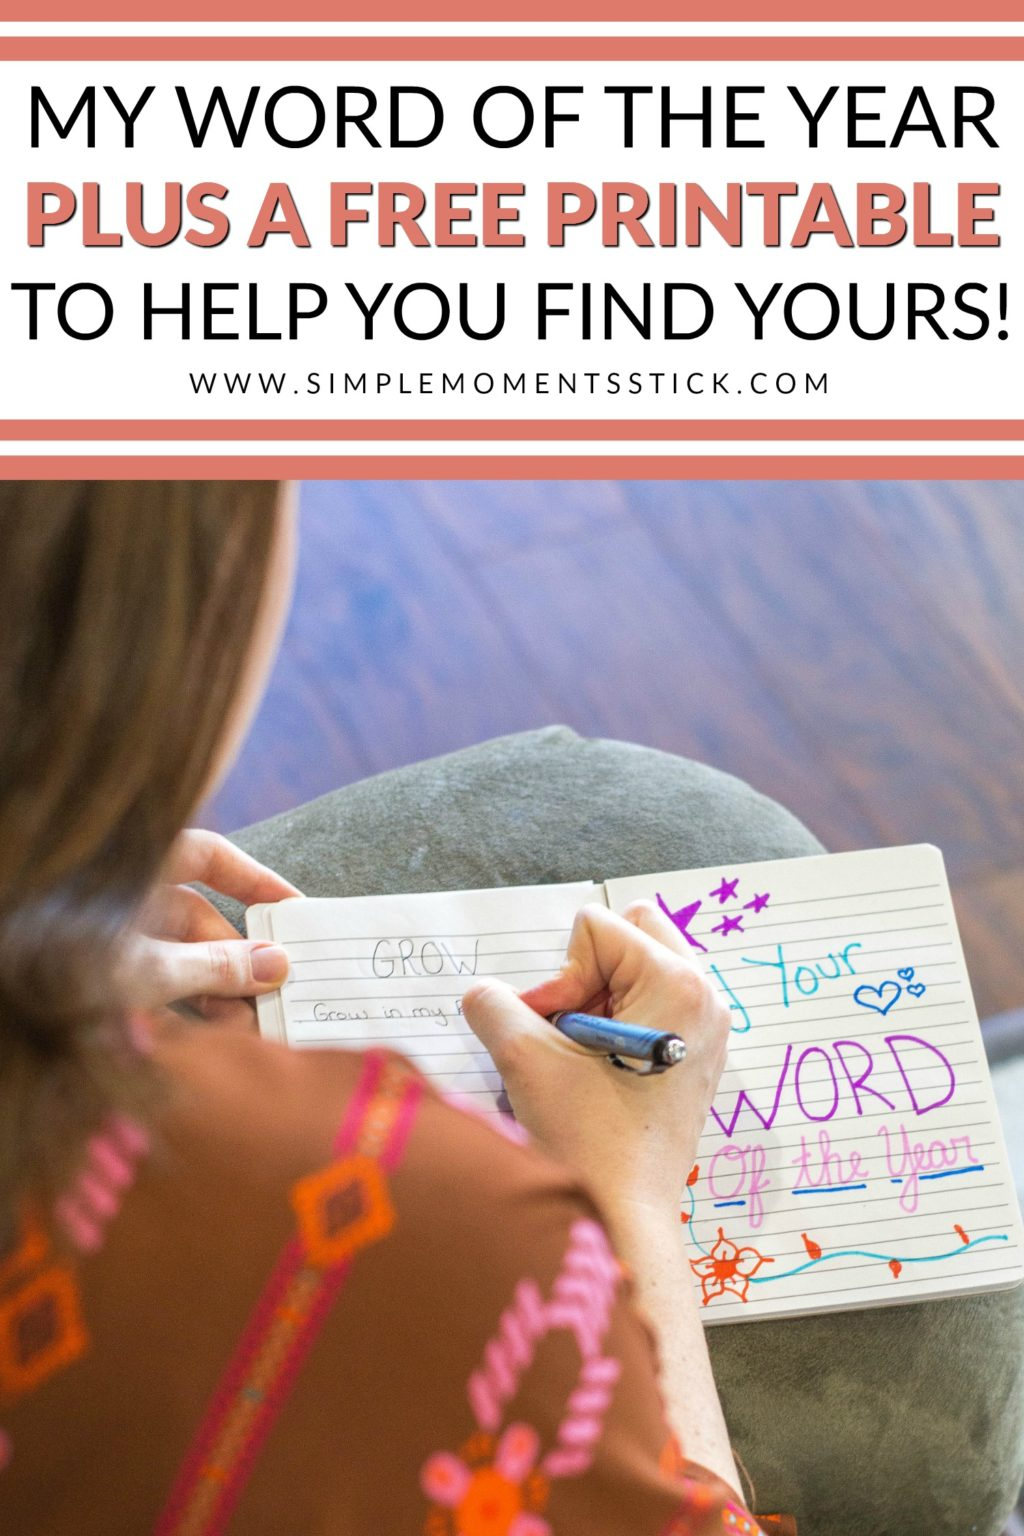 Do you ever wonder how to choose your word of the year? Check out this free printable step by step guide to discover your word of the year!